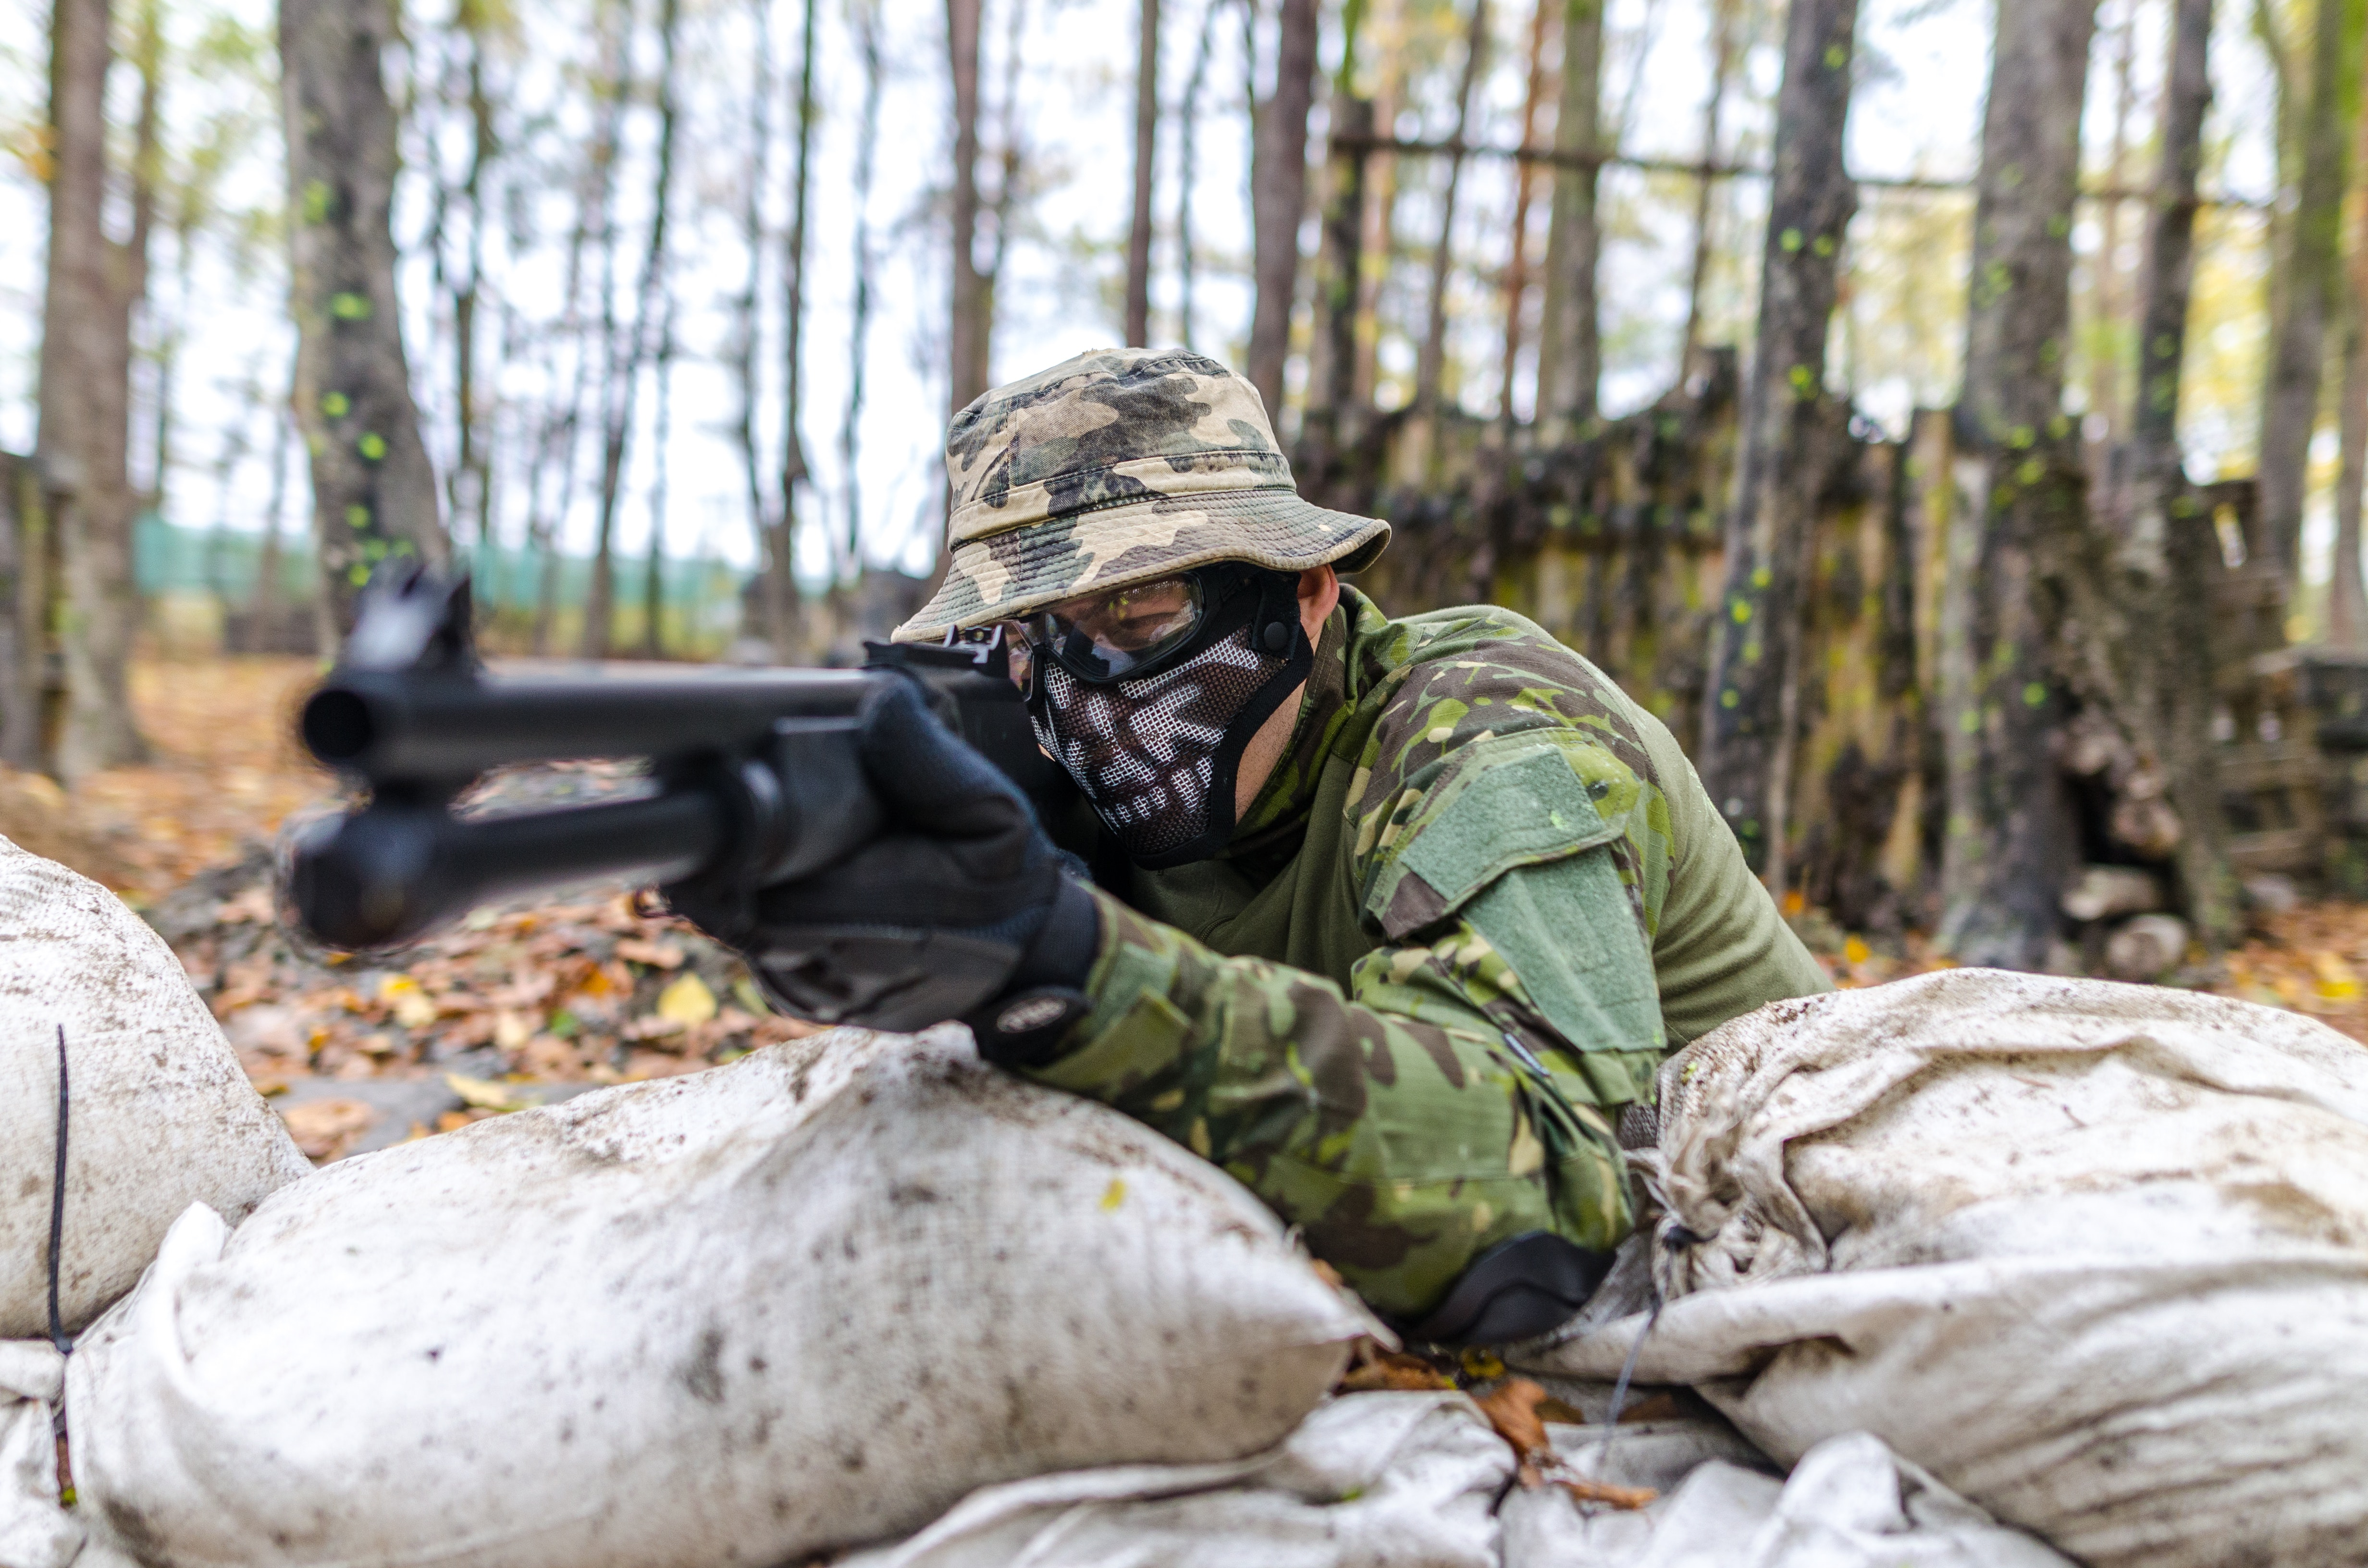 Soldier Holding a Rifle at Daytime, Action, Military, Wear, Weapon, HQ Photo